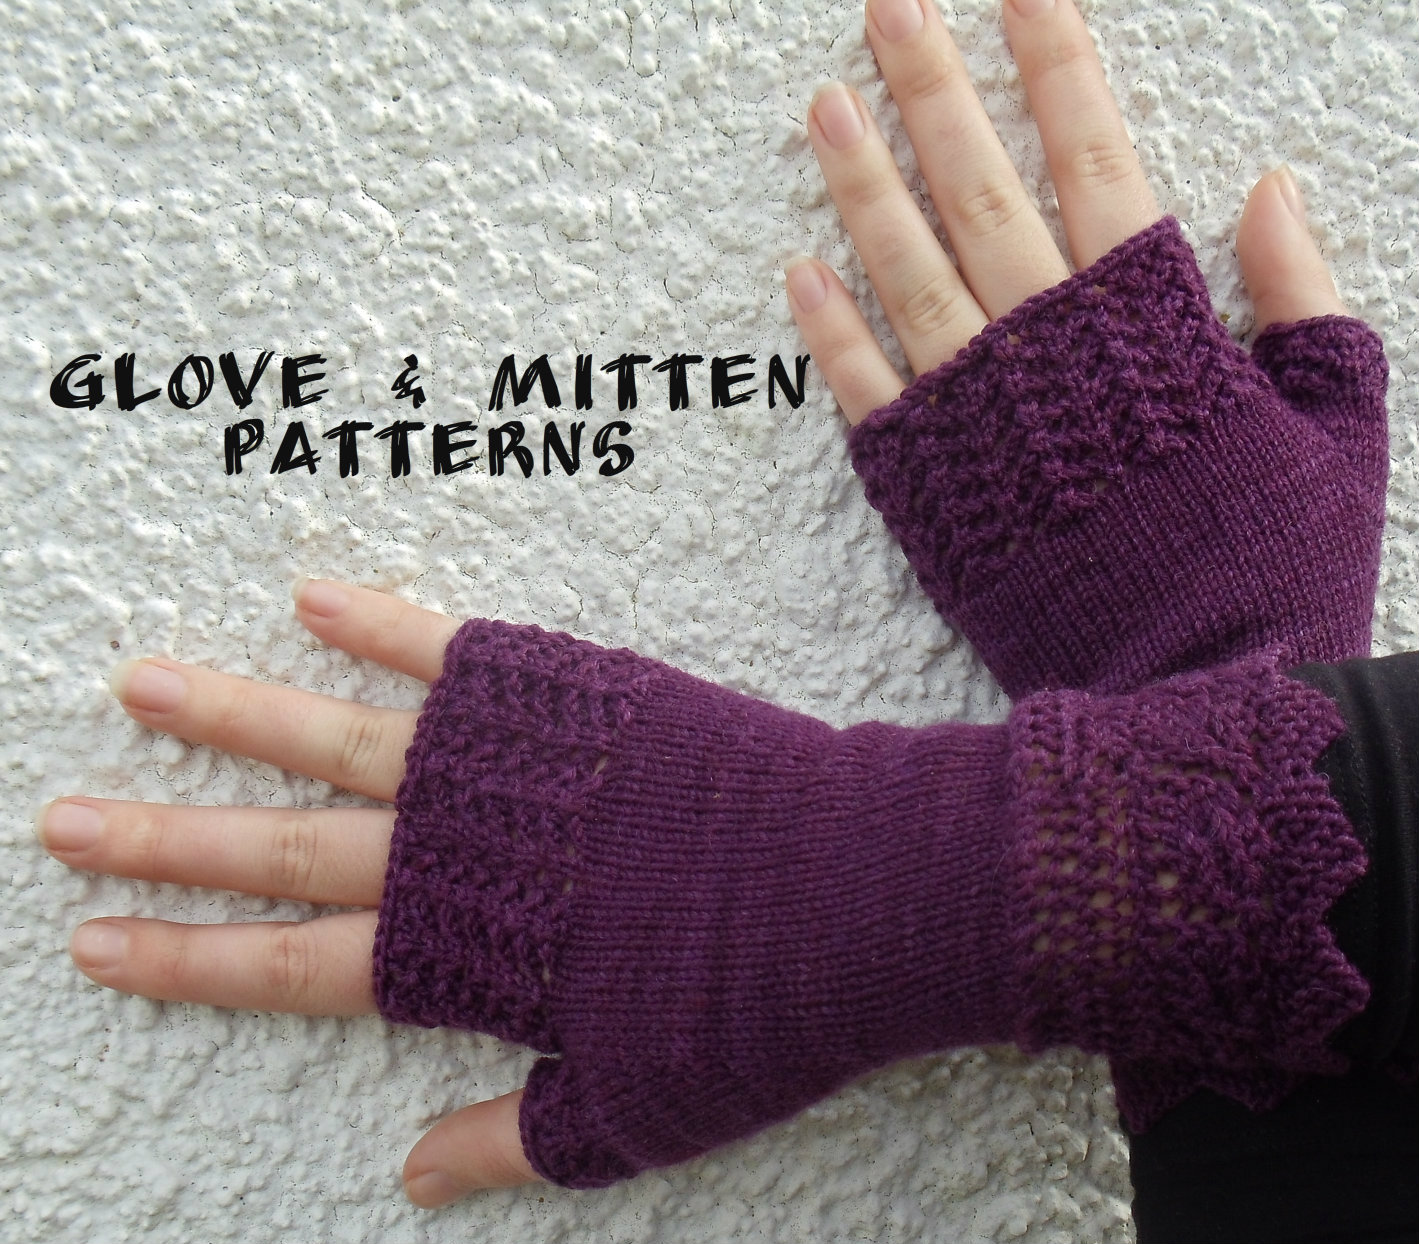 Glove & Mitten   Patterns